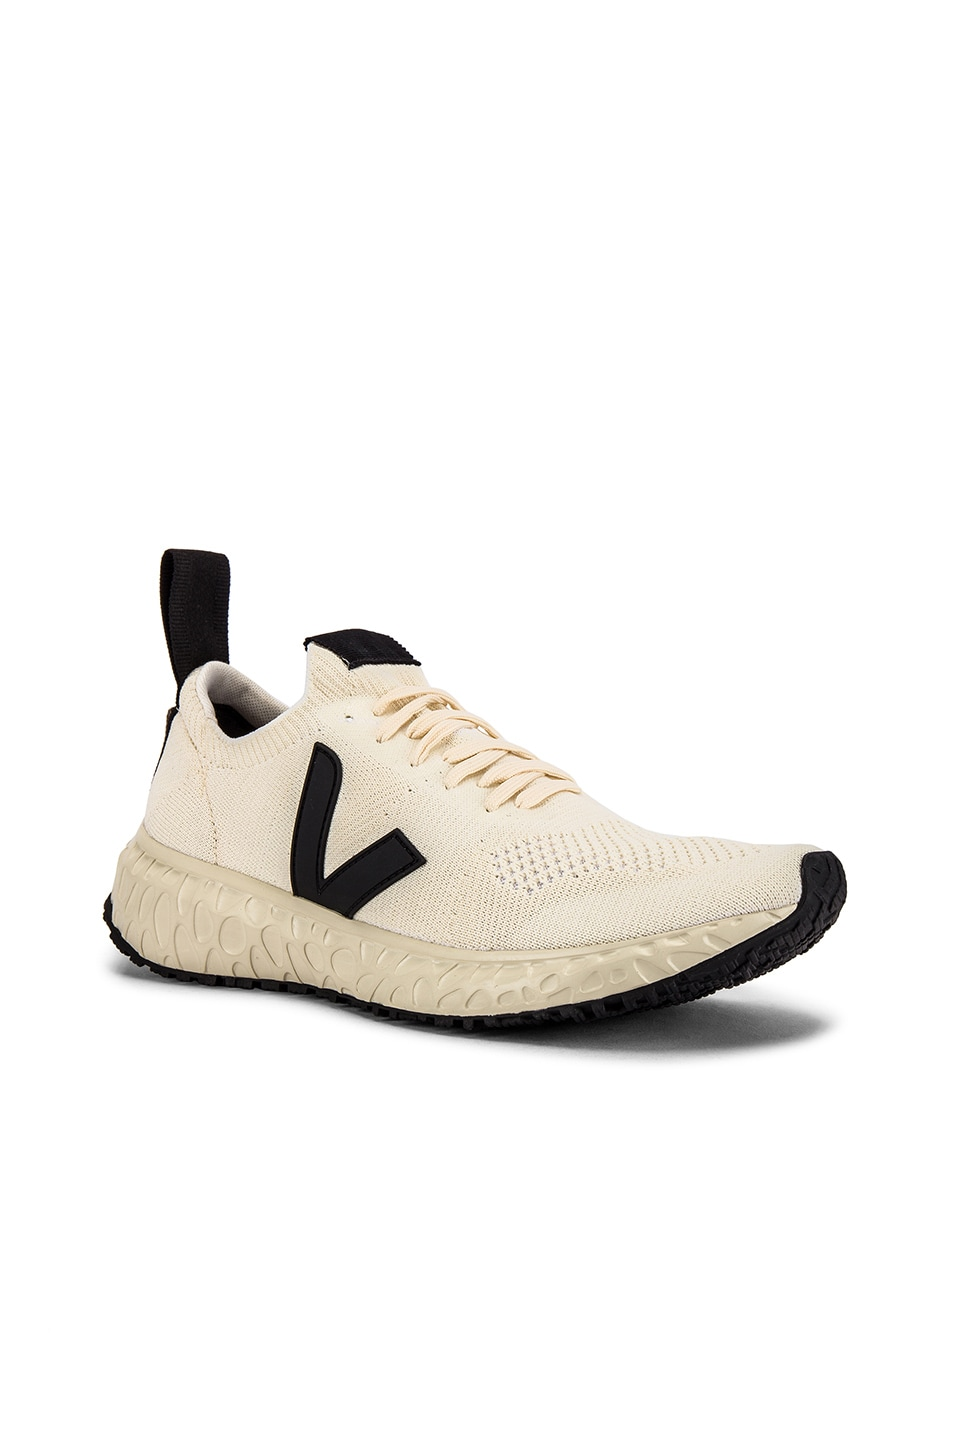 Image 1 of Rick Owens x Veja Sneakers in White in Wite